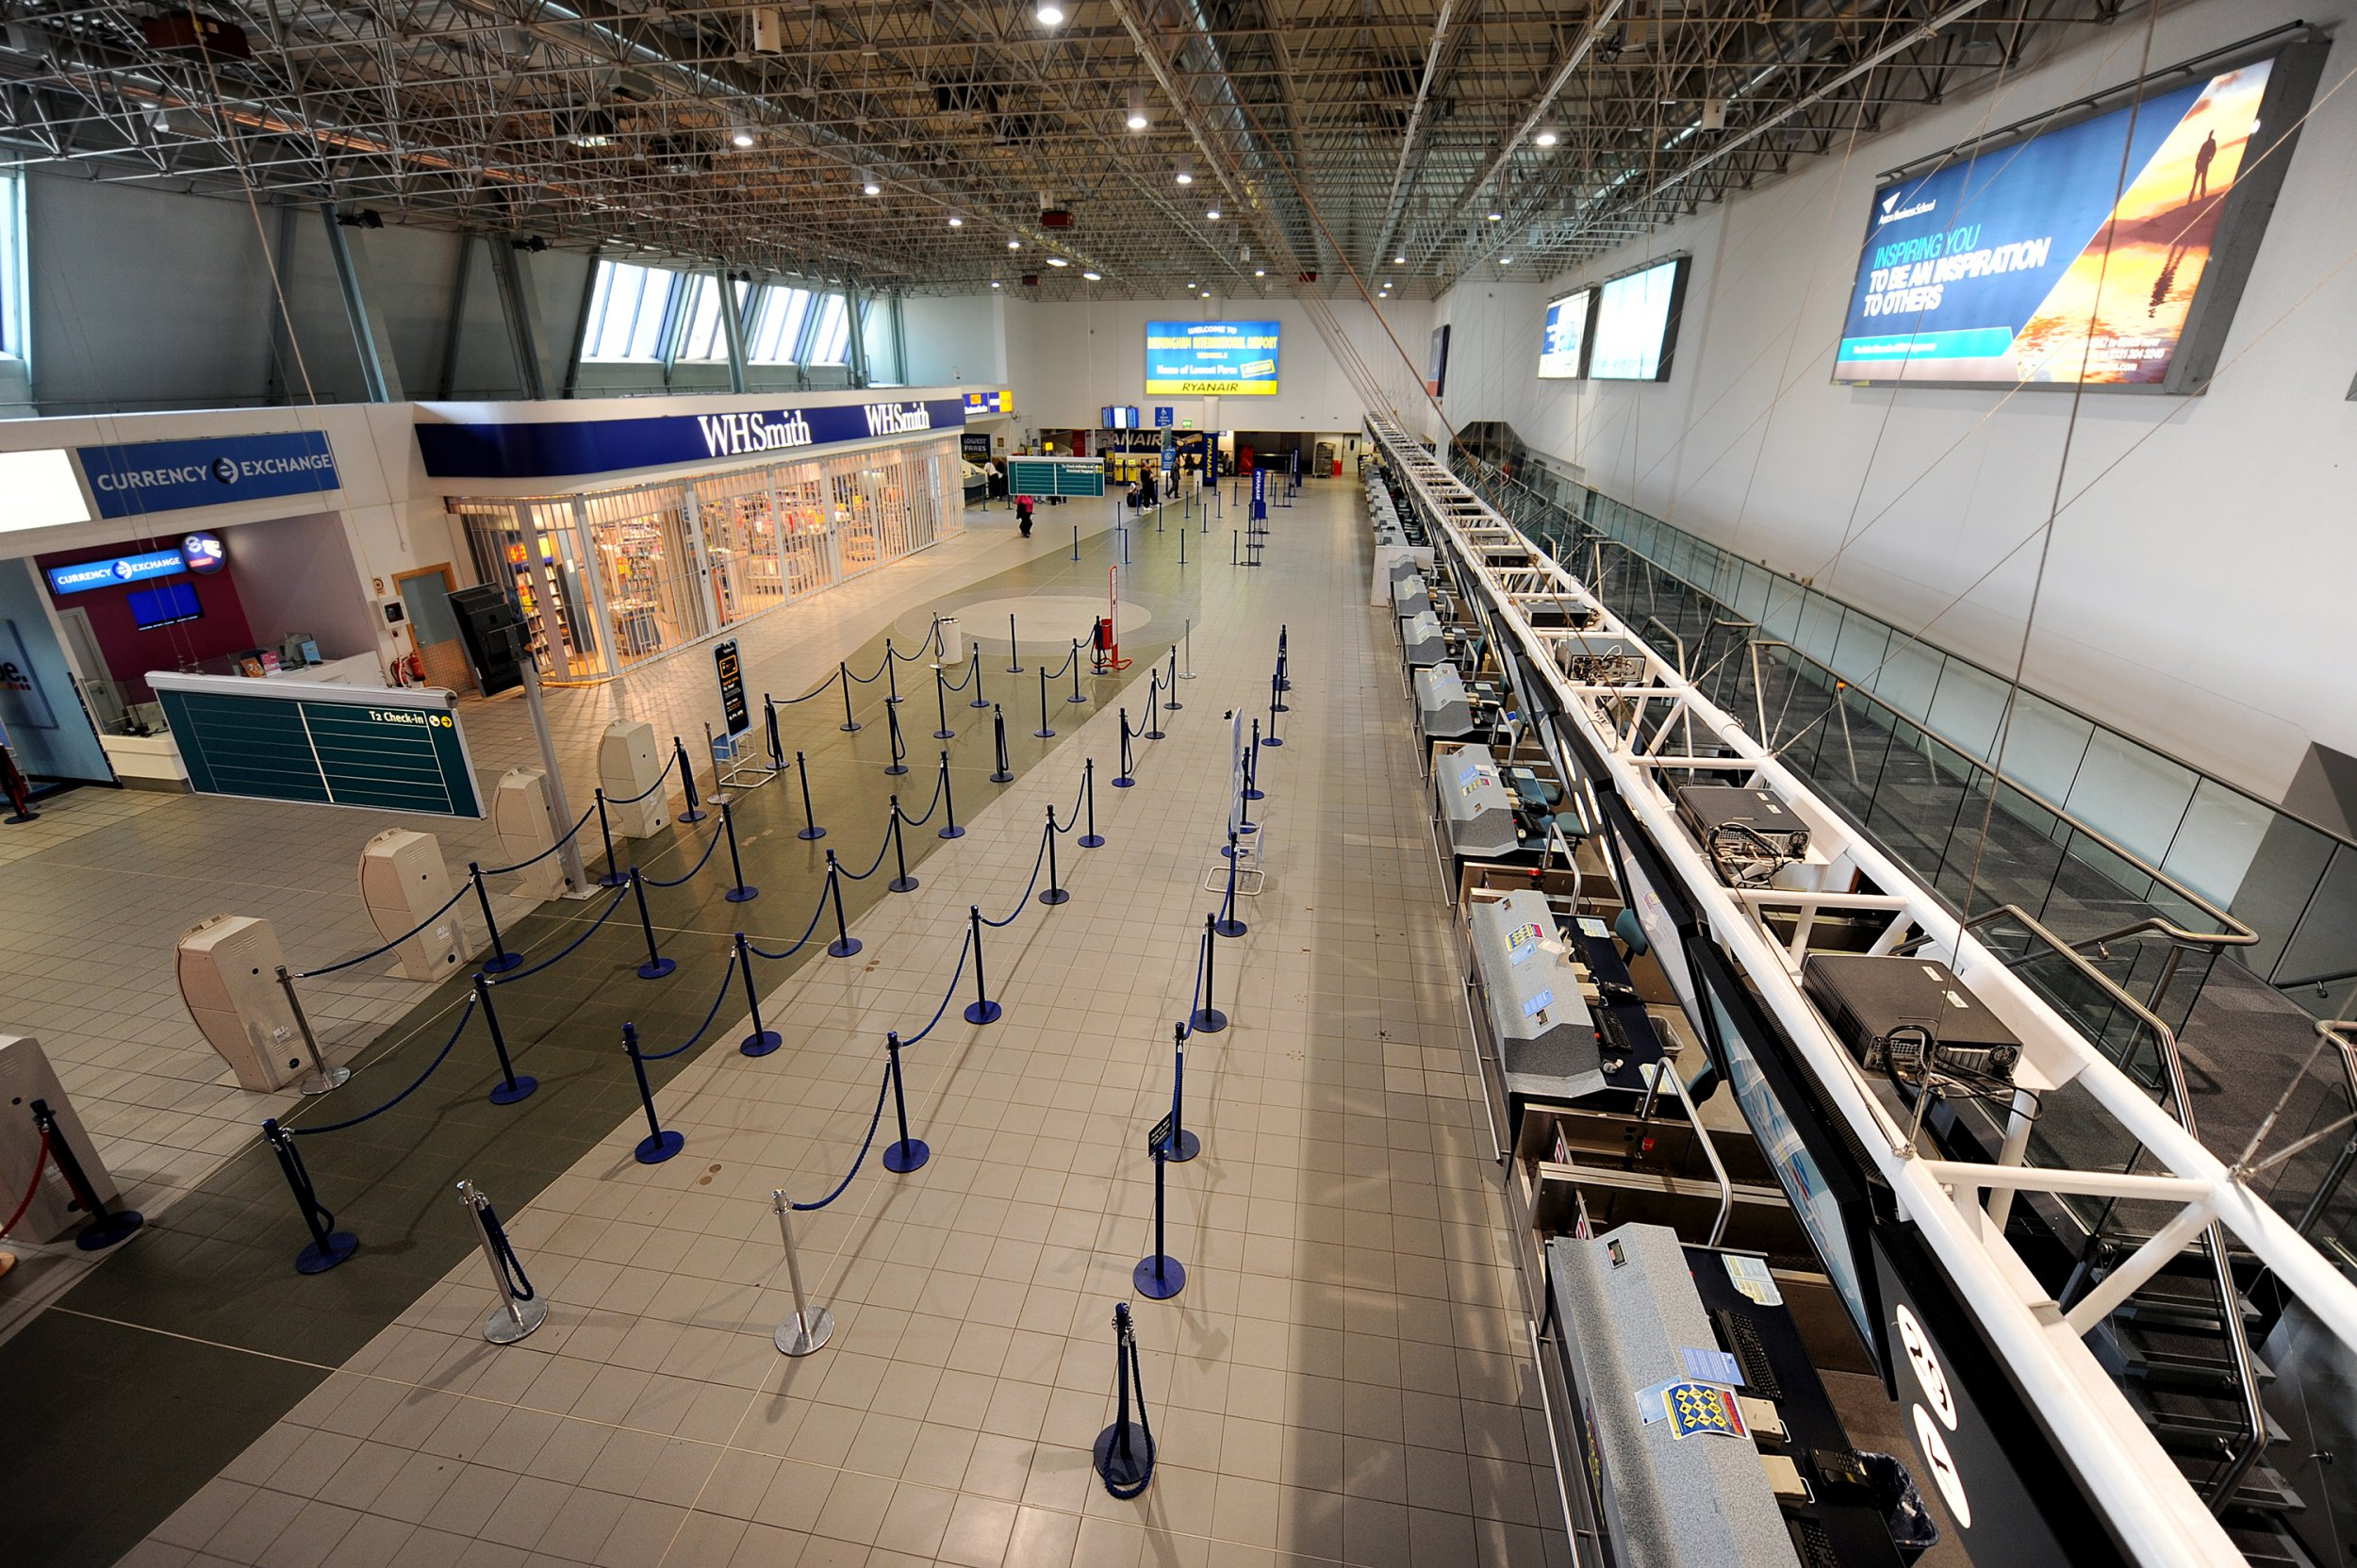 """A terminal at the Birmingham International Airport is empty of passengers on April 17, 2010, in Birmingham. Britain has extended a ban on most flights in its airspace until 1:00 am (0000 GMT) Sunday, as the volcanic ash cloud from Iceland was """"moving around and changing shape"""", air authorities said. Some 16,000 flights in European airspace on Saturday have been cancelled due to the cloud of volcanic ash from Iceland that is still lingering over the continent, Eurocontrol said. AFP PHOTO/BEN STANSALL (Photo credit should read BEN STANSALL/AFP/Getty Images)"""